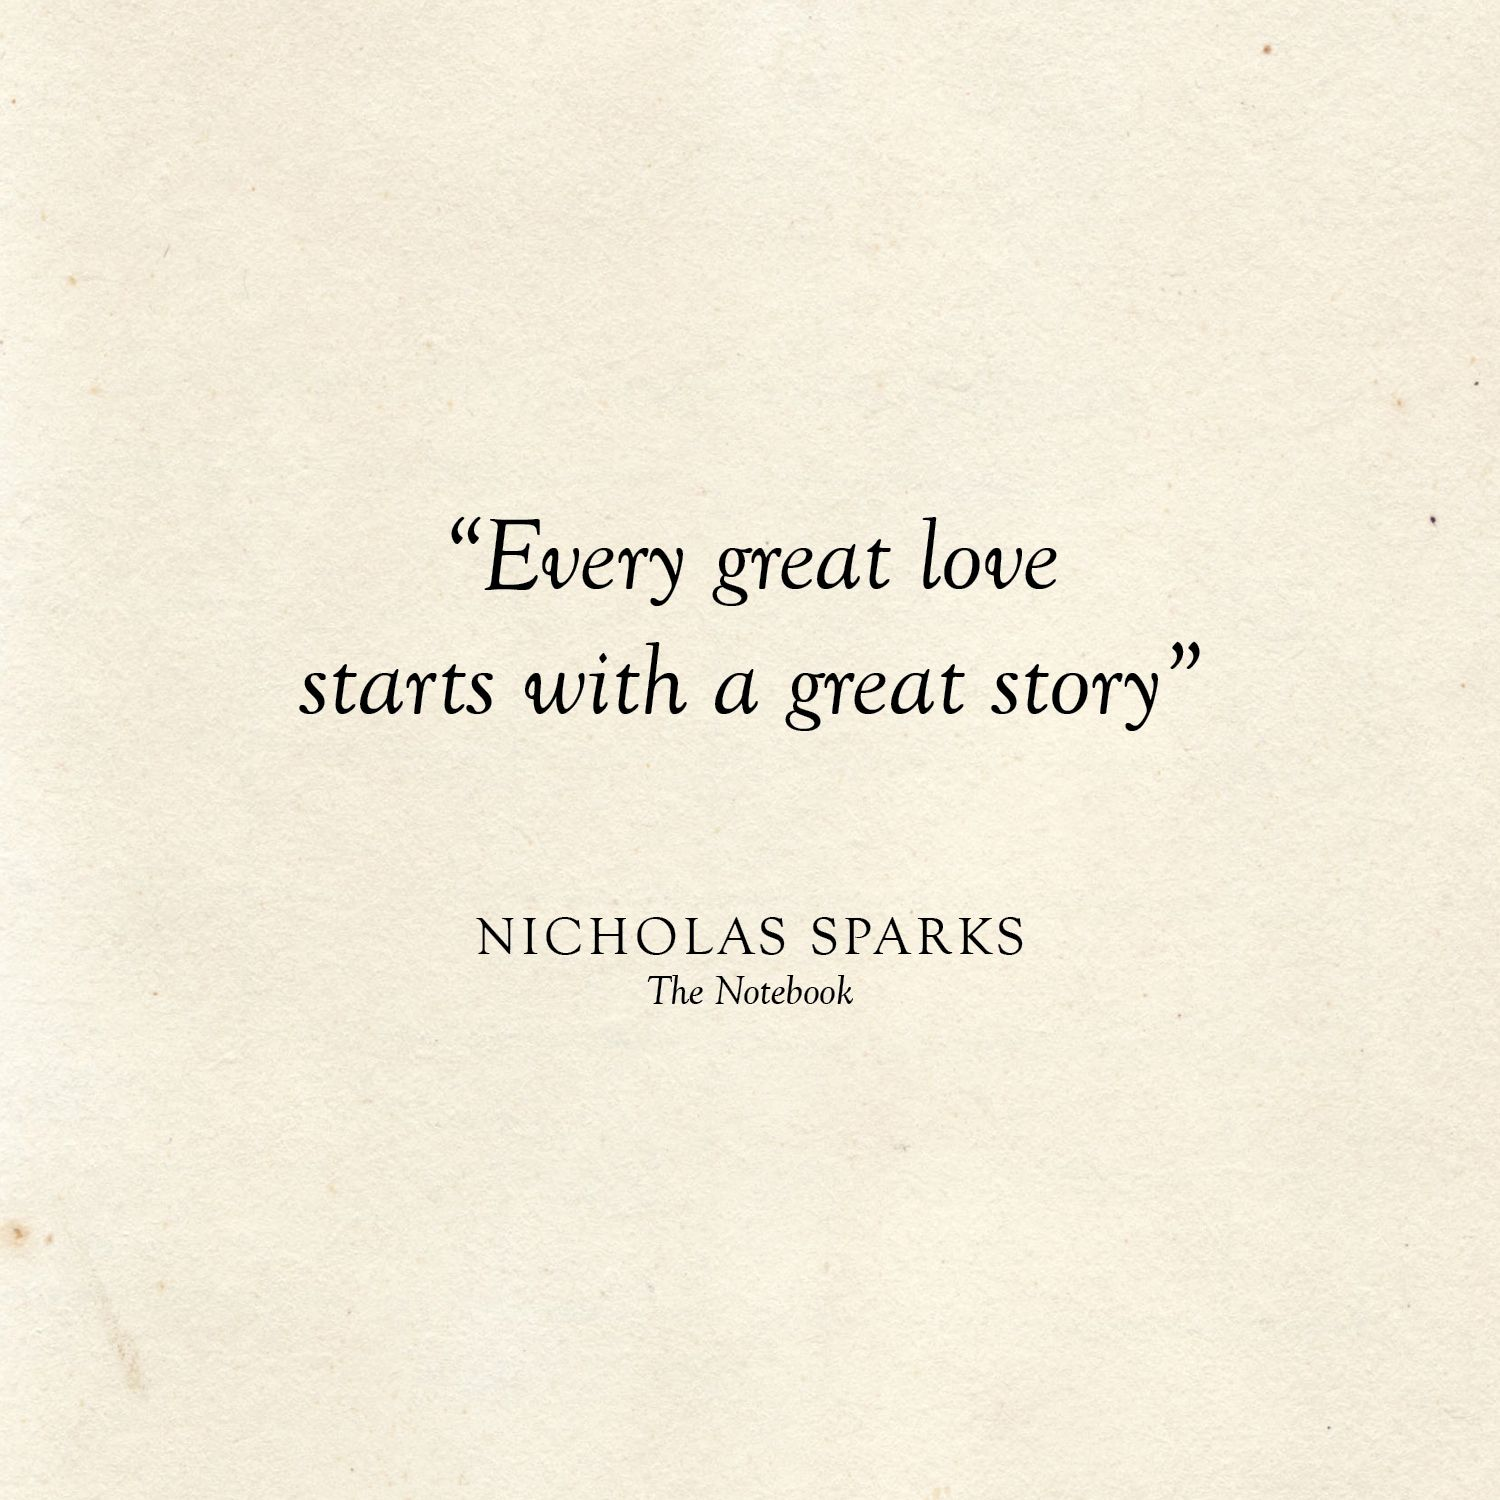 25 Literary Love Quotes Literary Love Quotes Love Quotes For Wedding Nicholas Sparks Quotes